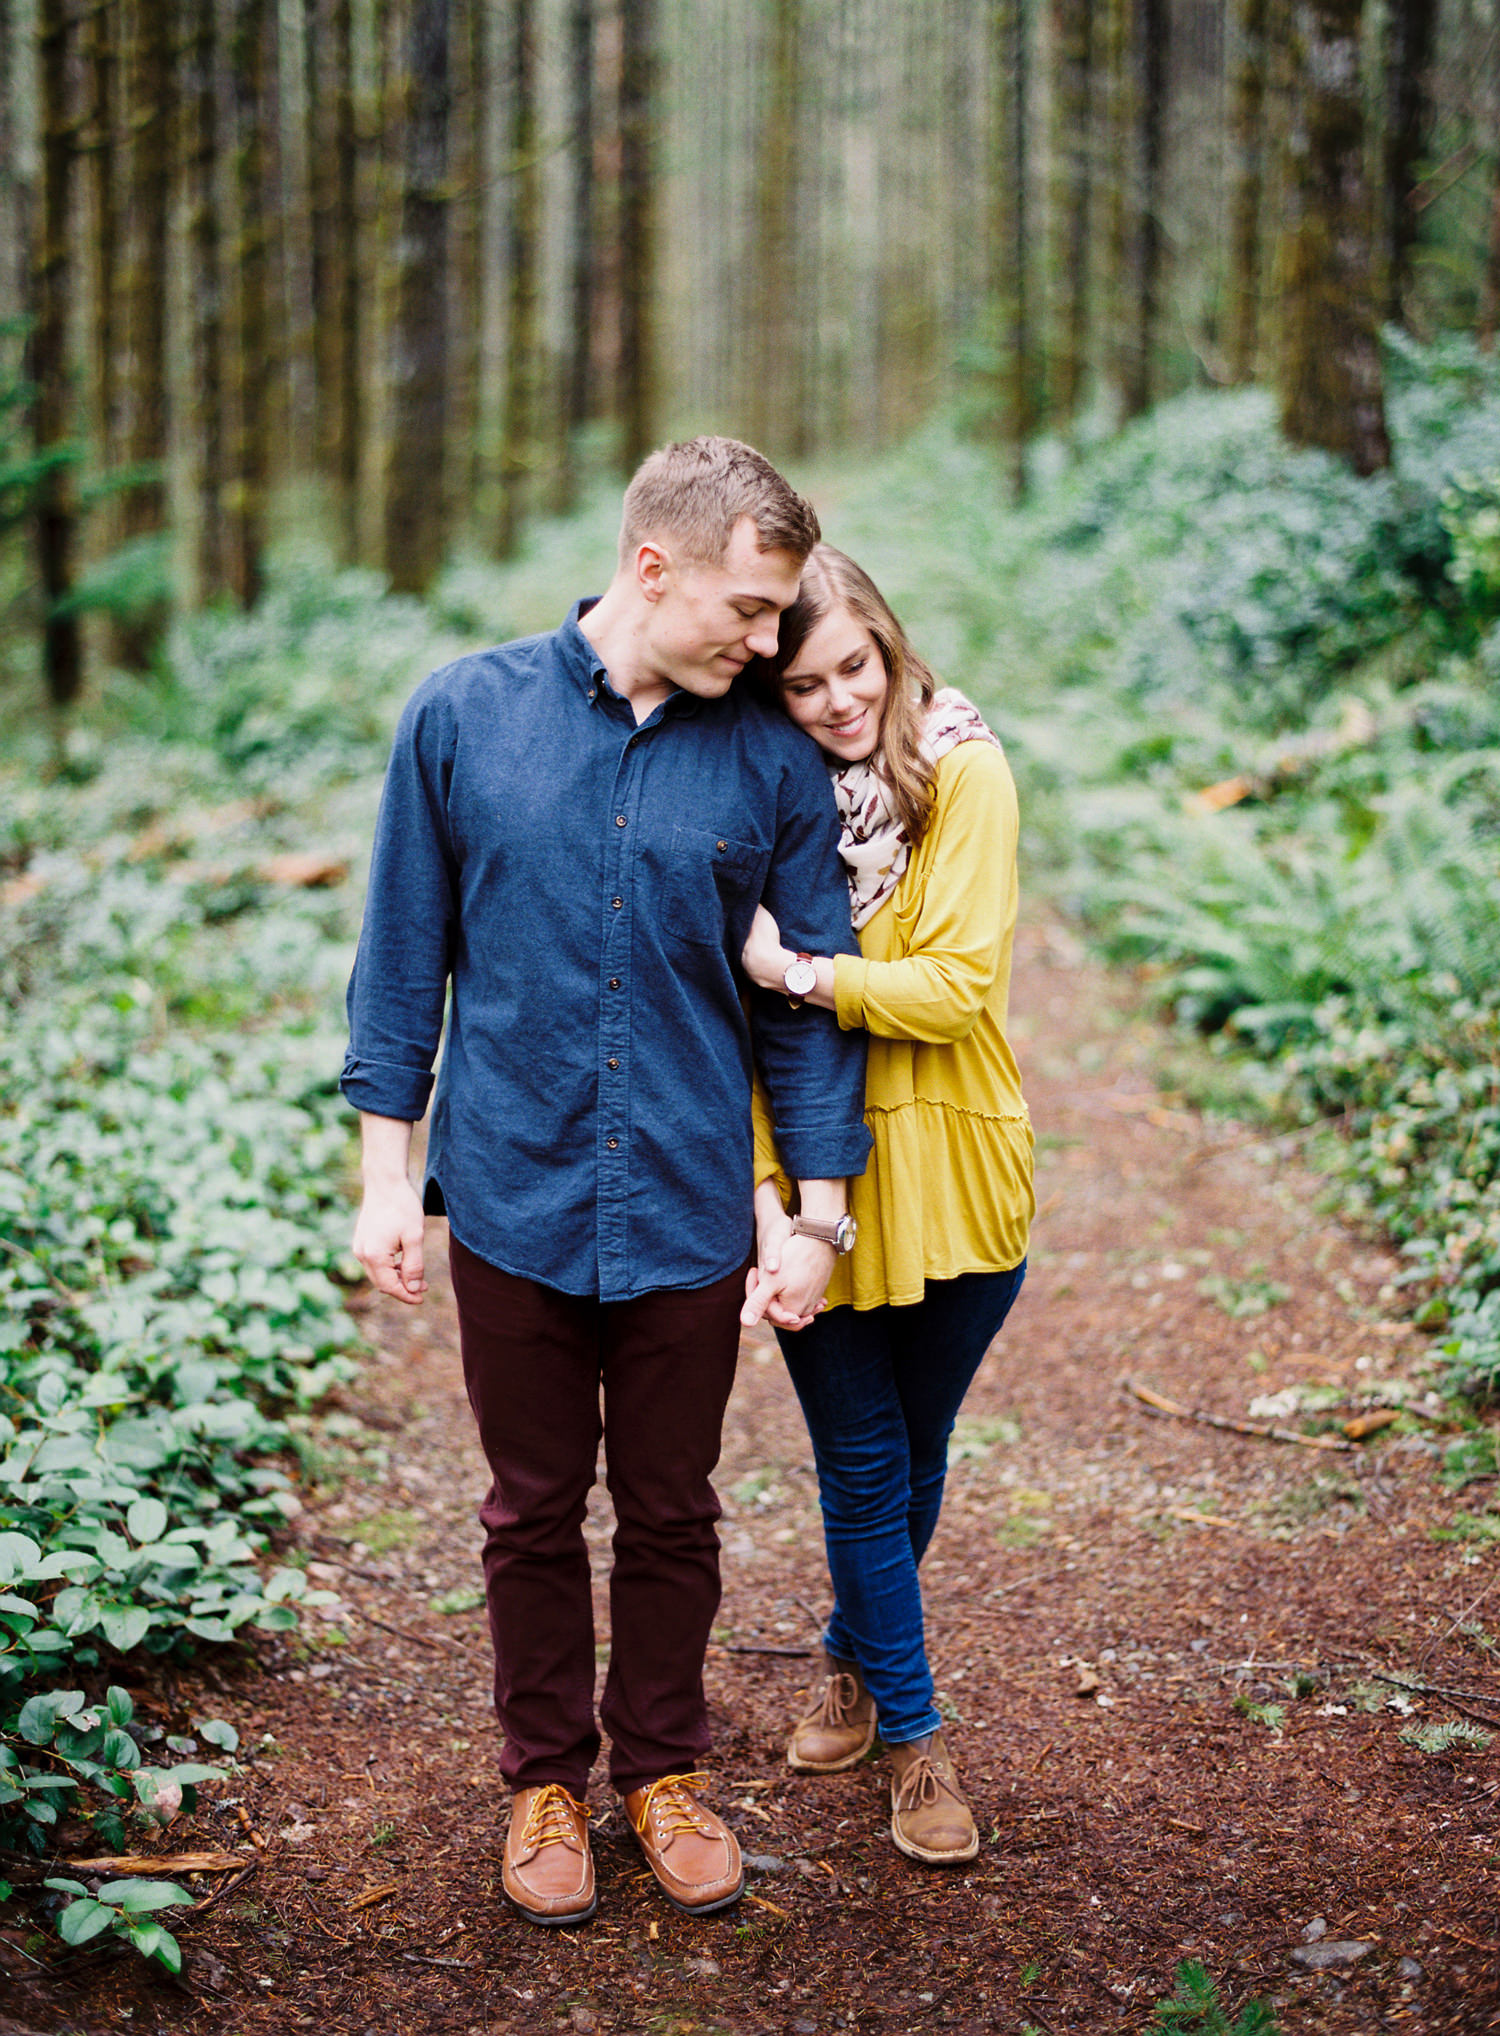 016-snoqualmie-mountain-engagement-session-seattle-film-wedding-photographer-ryan-flynn.jpg